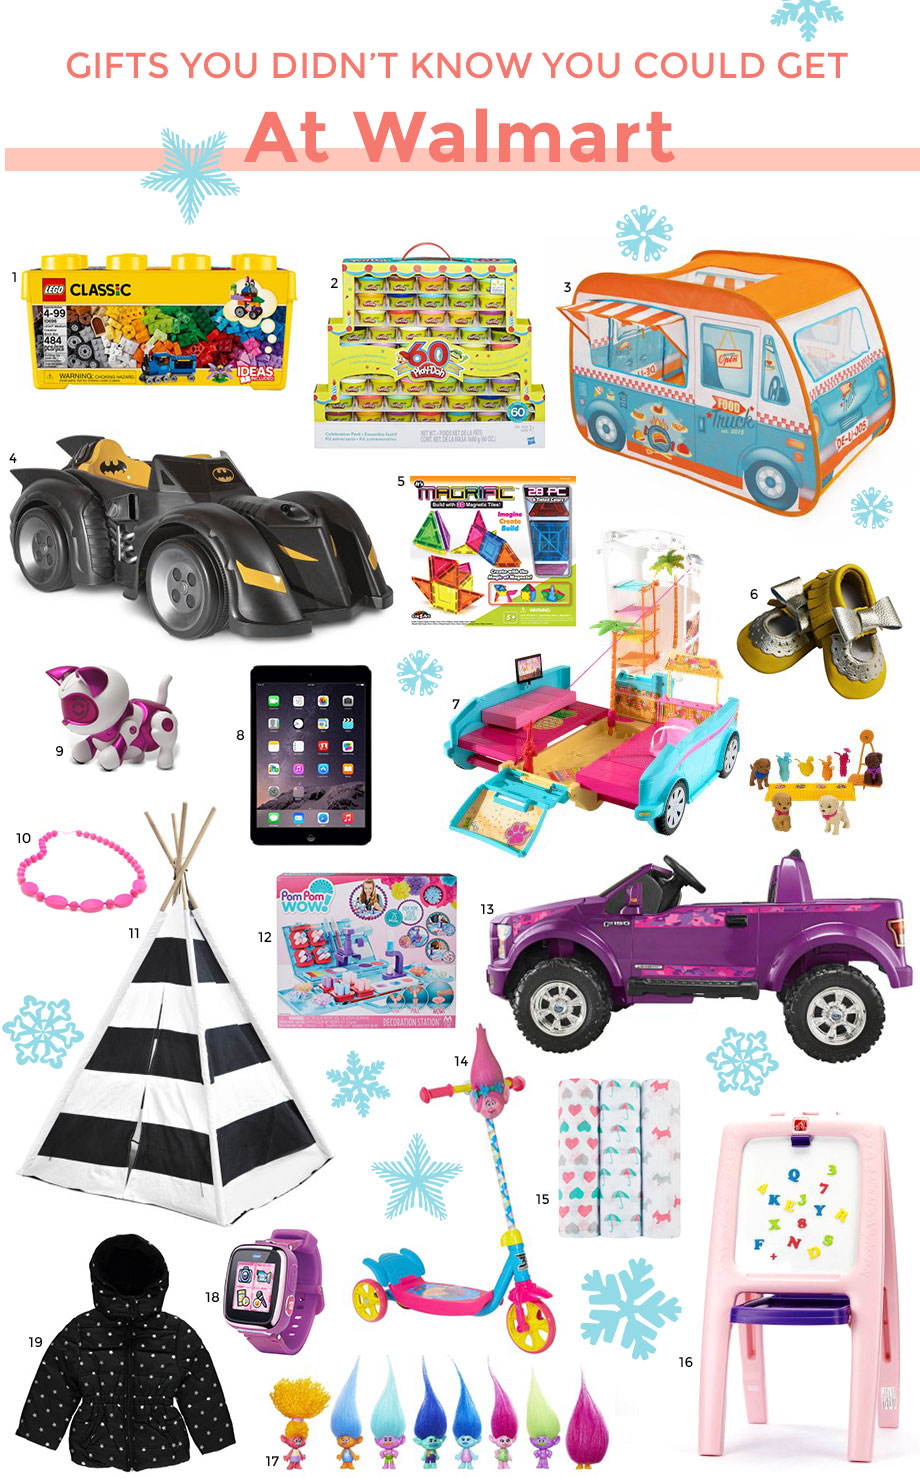 Children's gifts you didn't know you could get at Walmart.